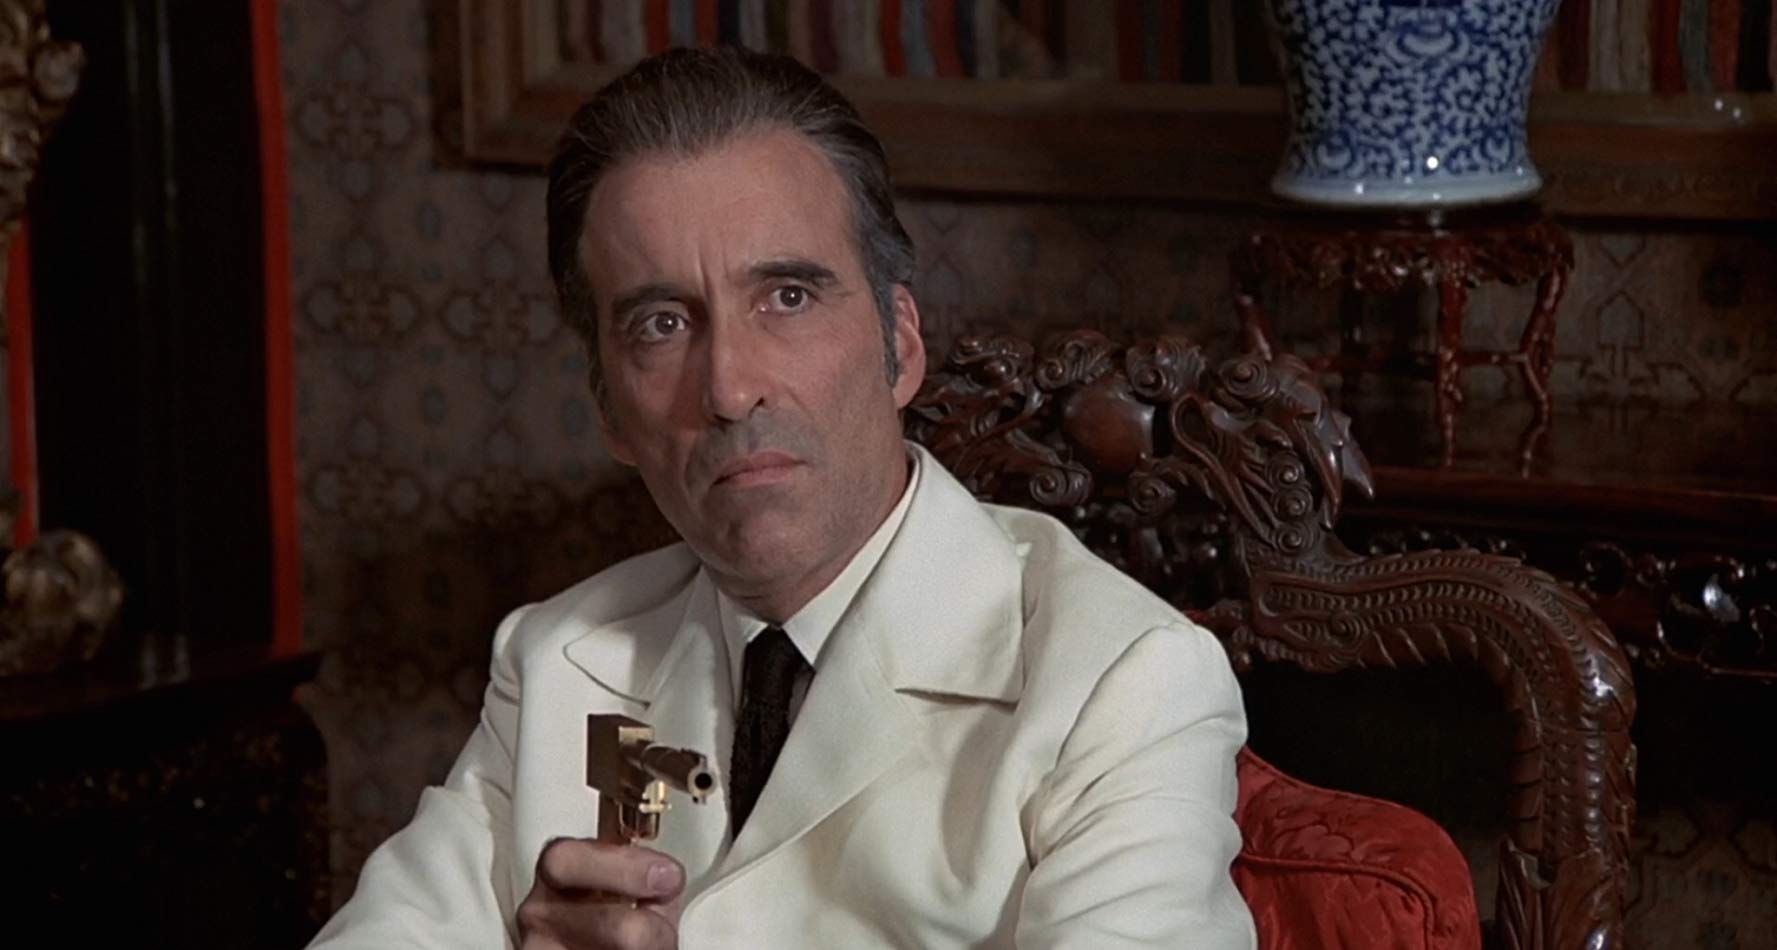 Christopher Lee as Scaramanga in The Man with the Golden Gun (1974)